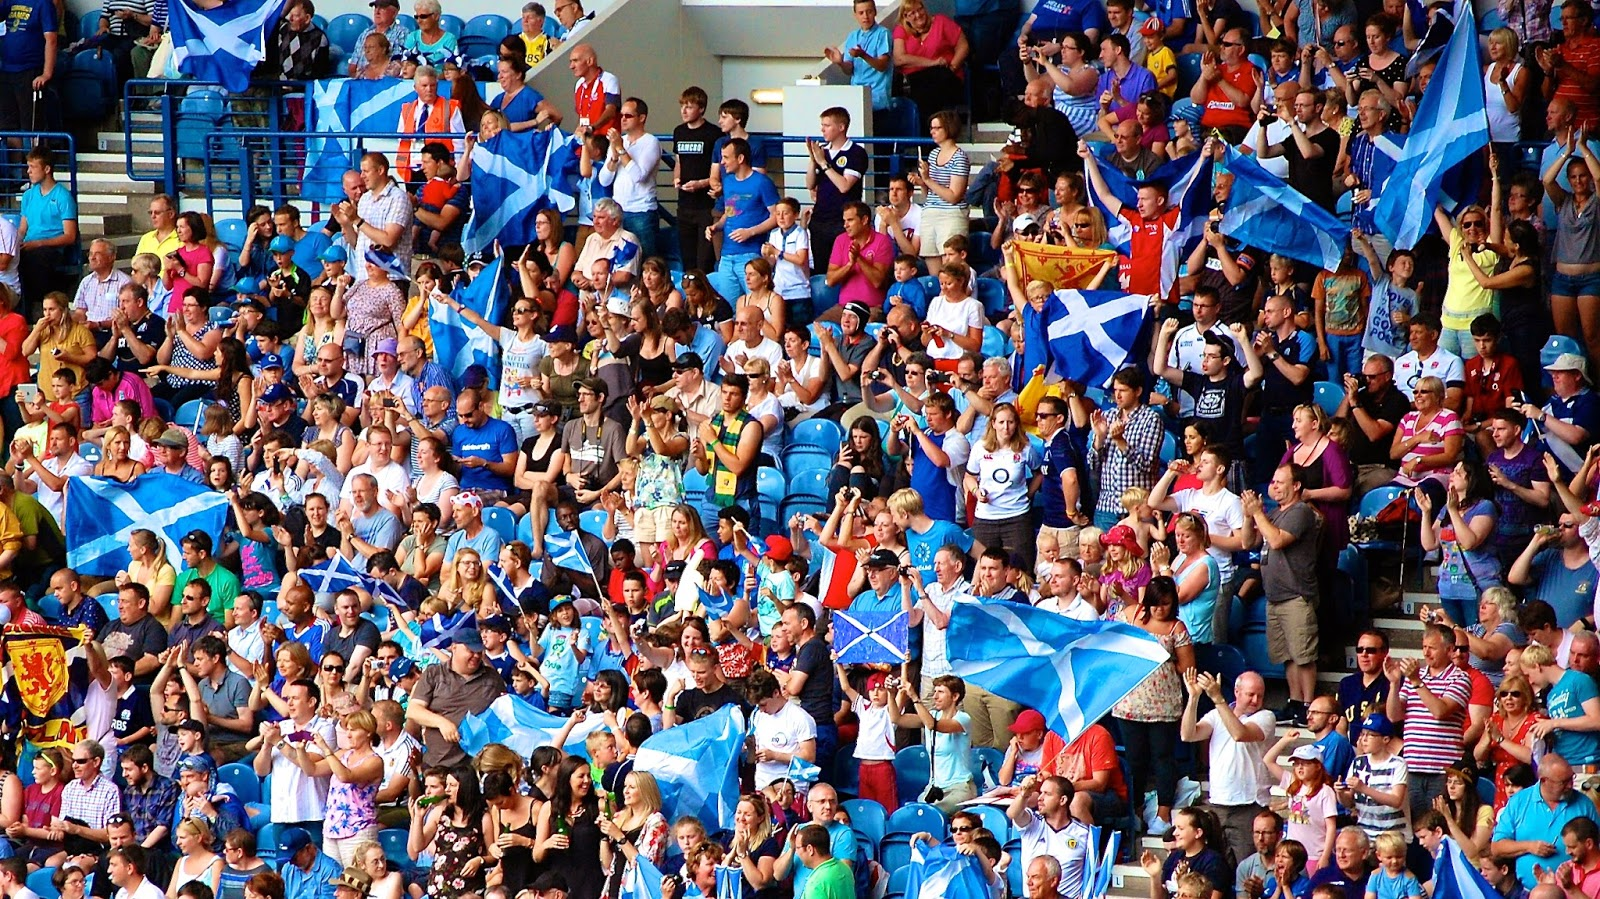 Scottish flags; the Saltire